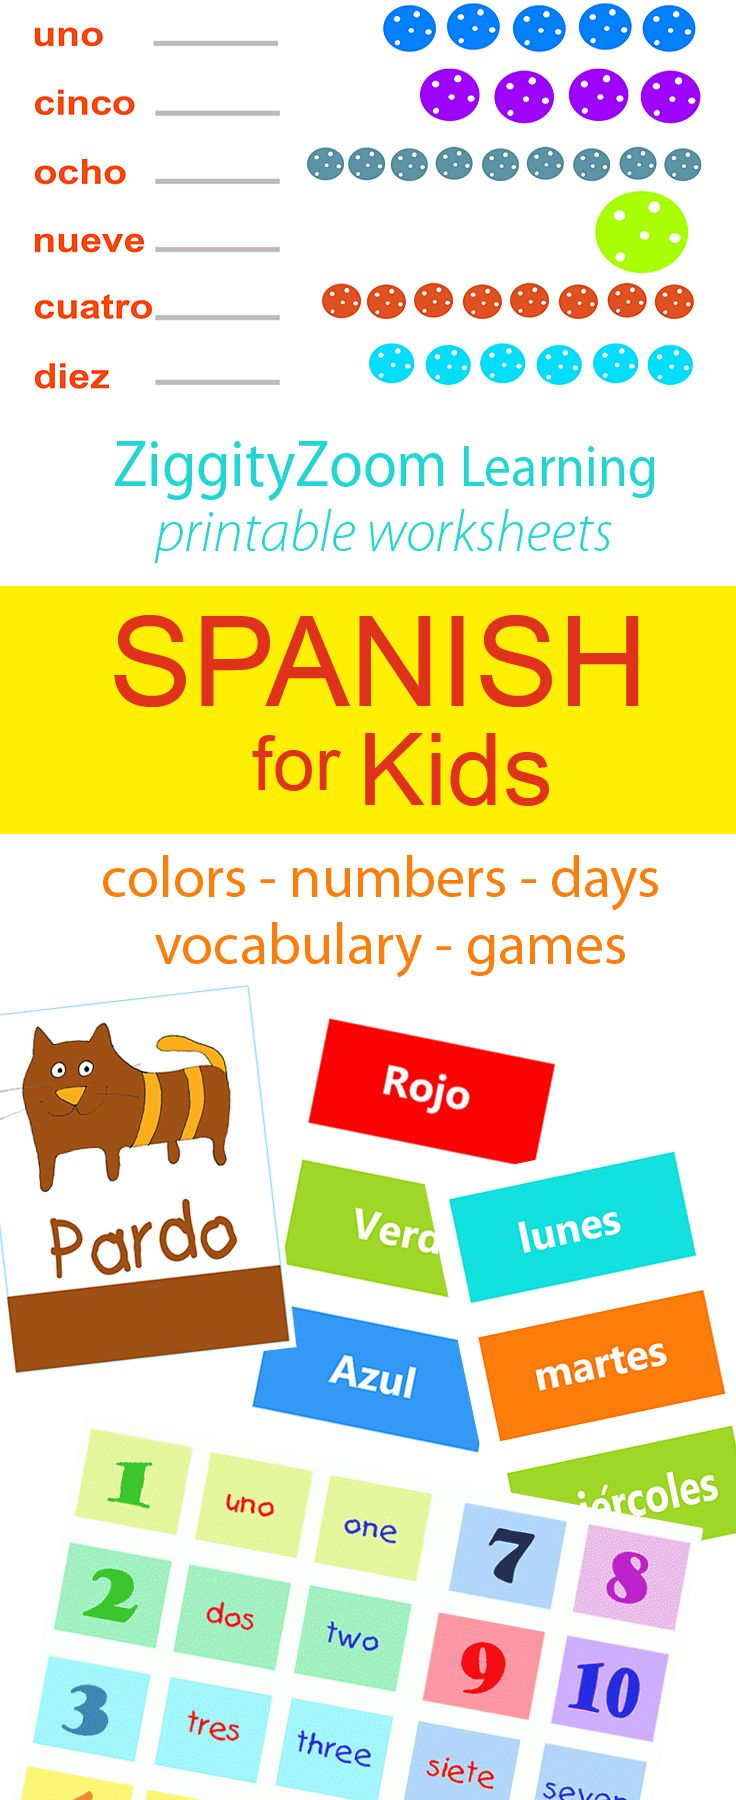 free printable spanish worksheets for kids lots of beginner printables for learning spanish or. Black Bedroom Furniture Sets. Home Design Ideas